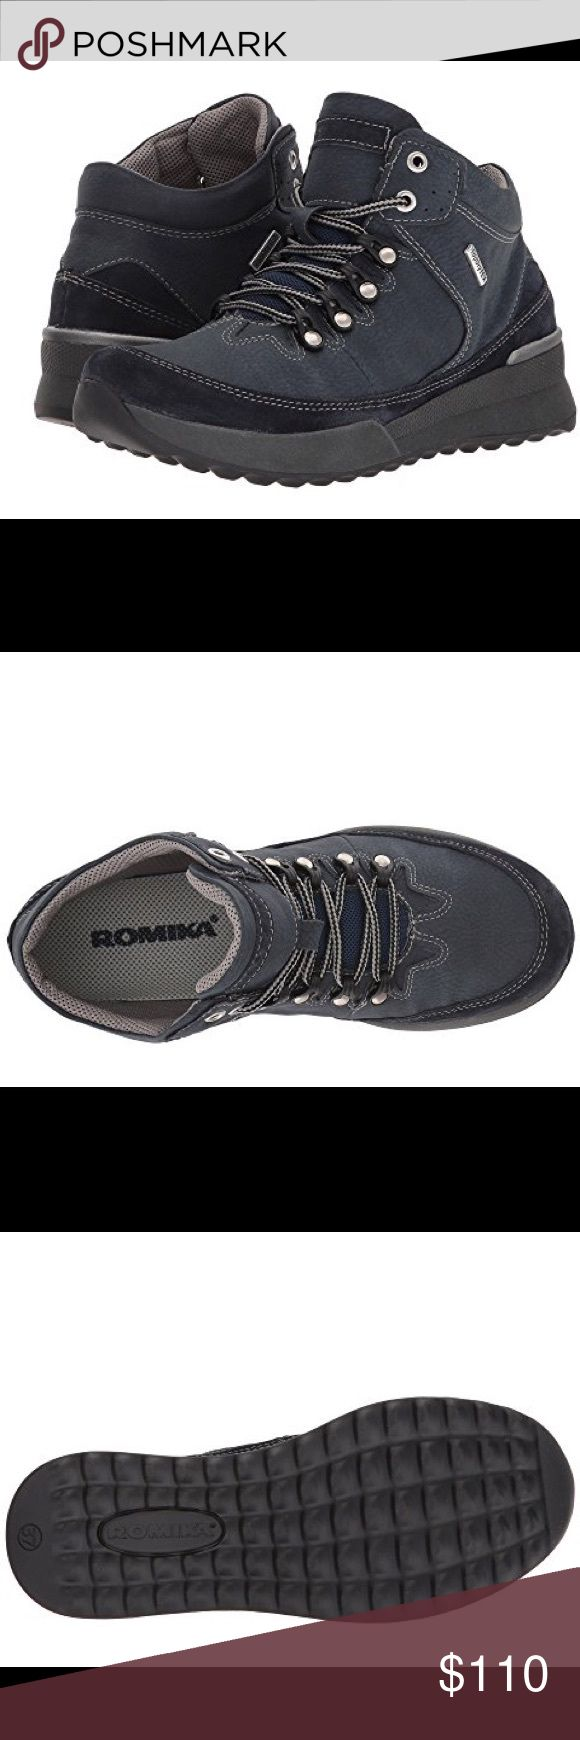 Romika Victoria 05 black shoes size 40 NWT Romika waterproof Victoria 05 boot. Durable leather upper. Topdry Tex membrane for a comfortable waterproof environment. Lace-up closure. Smooth textile lining. Textile padded footbed. Romika Shoes